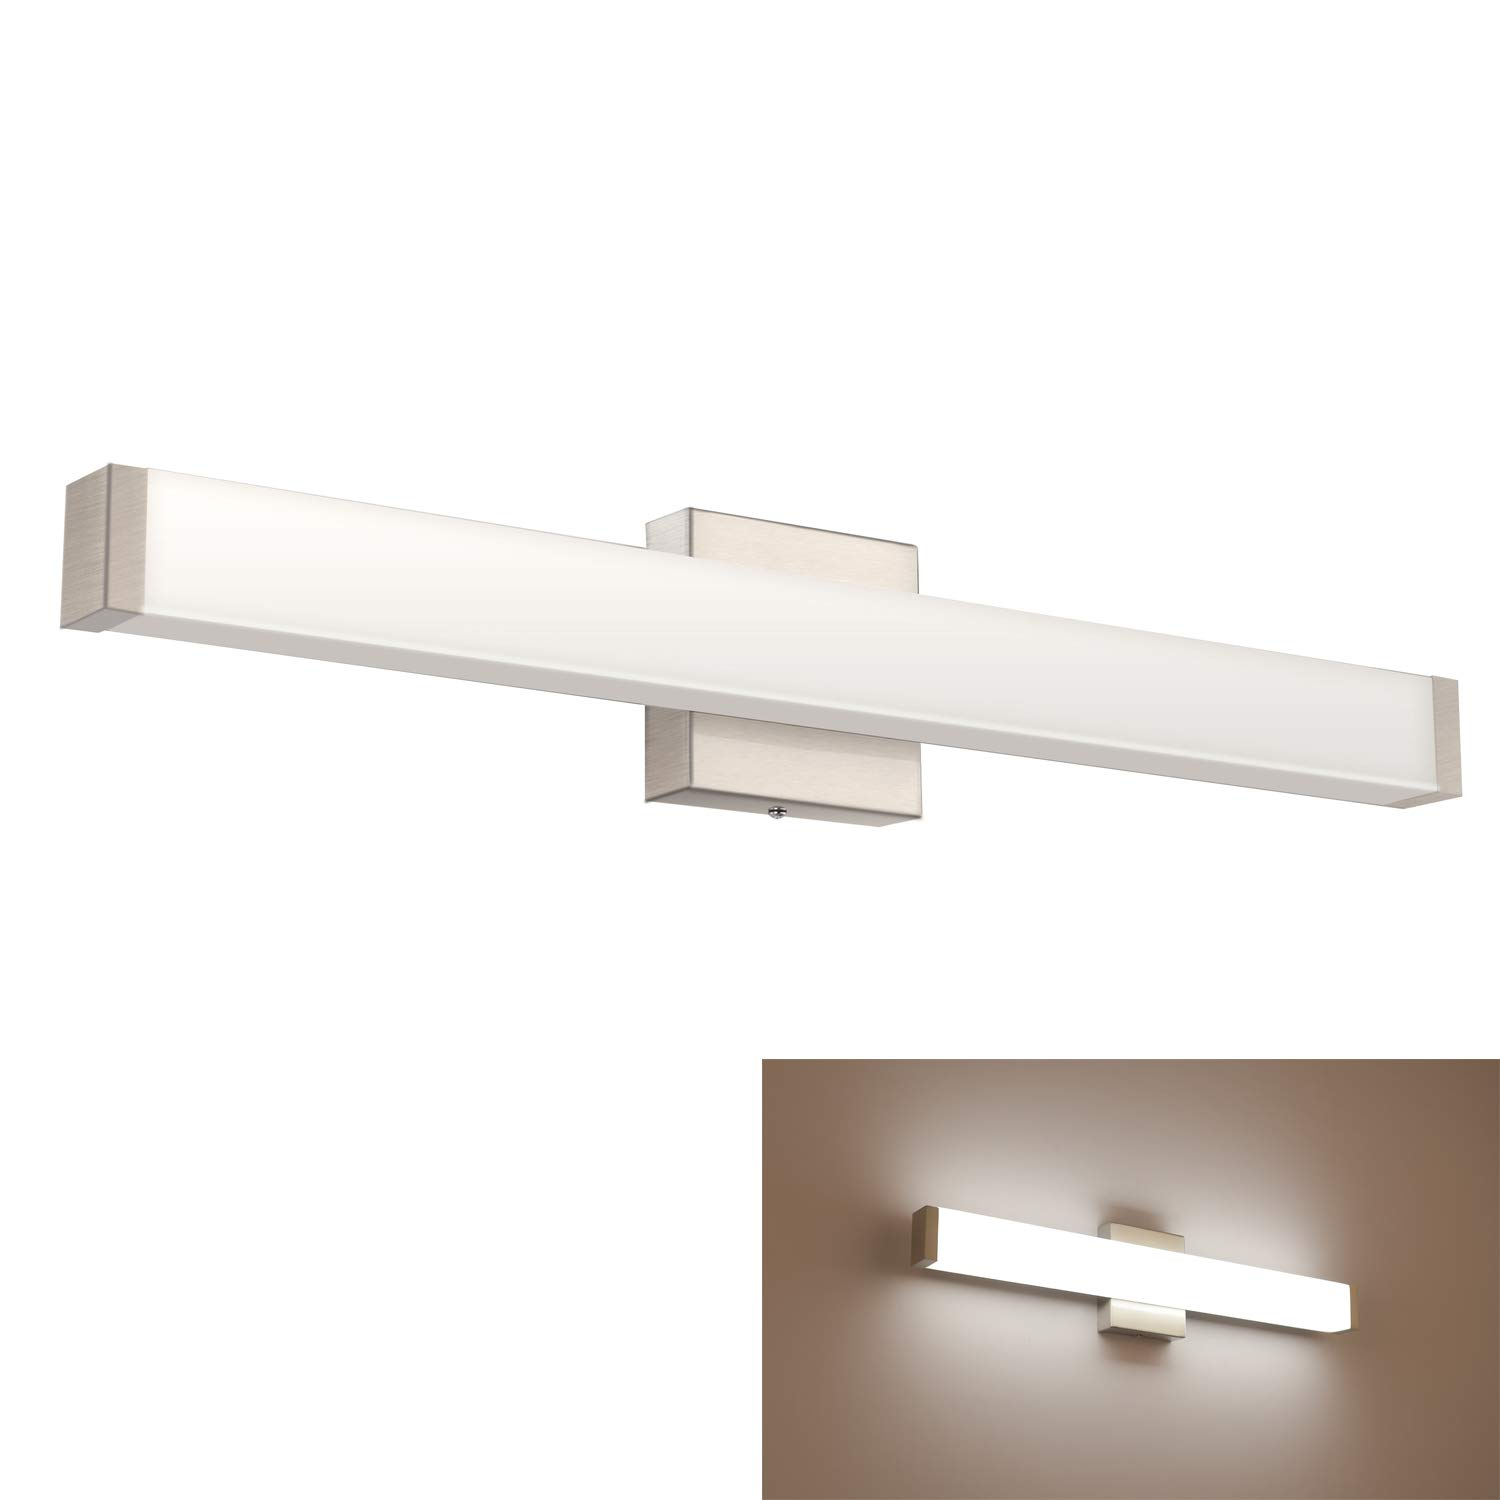 YHTlaeh Bathroom Vanity Light Brushed Nickel Square LED 24 inch 14W Daylight 4000K Wall Bar Lighting Fixtures Over Mirror